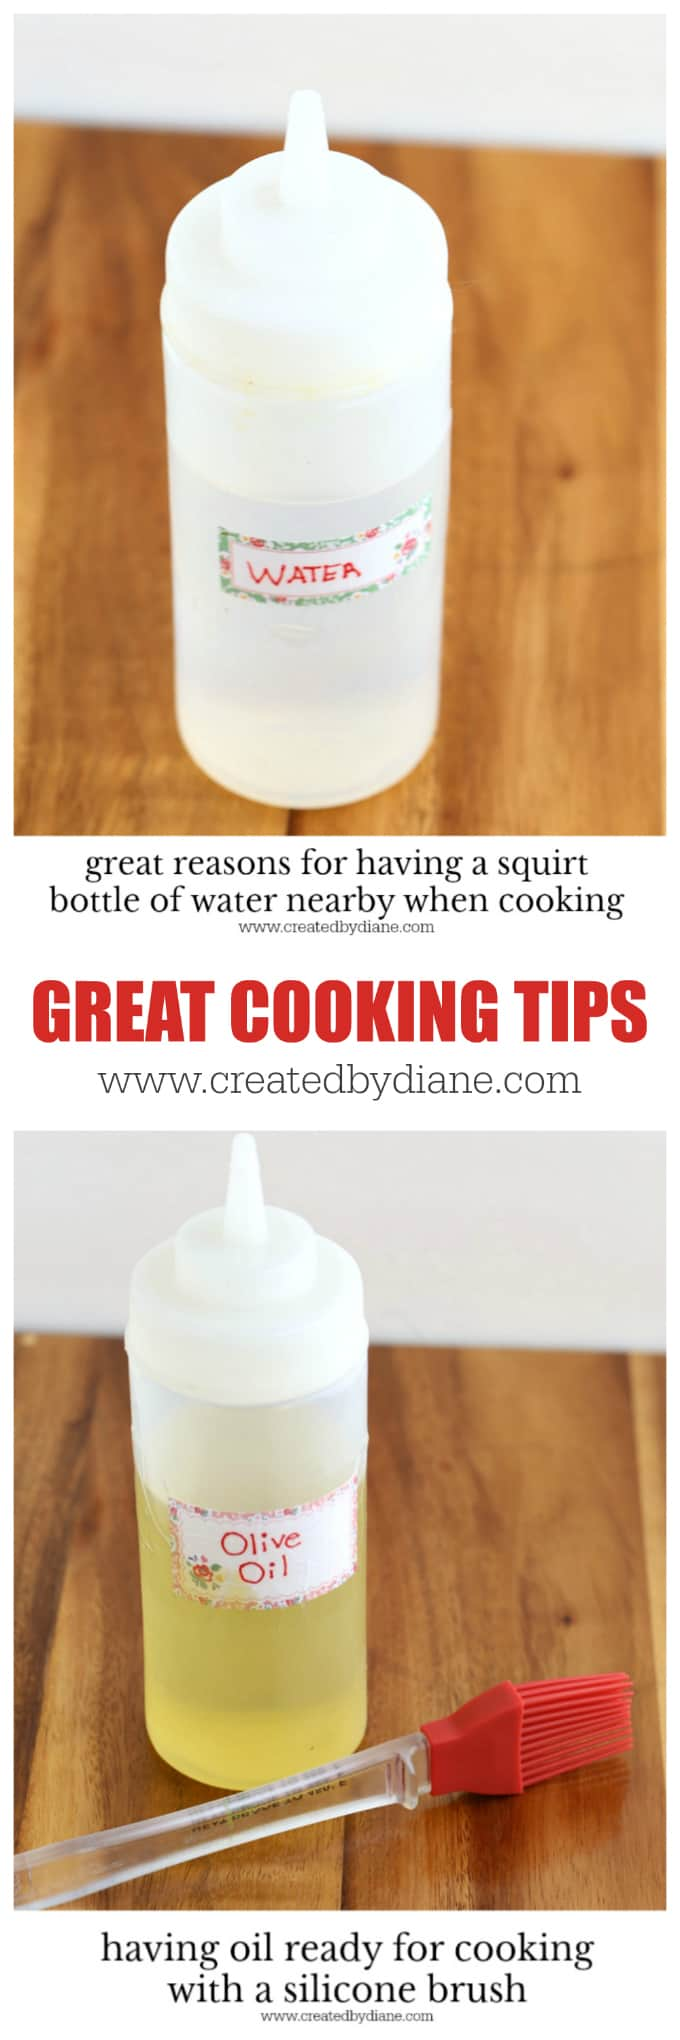 great cooking tips www.createdbydiane.com